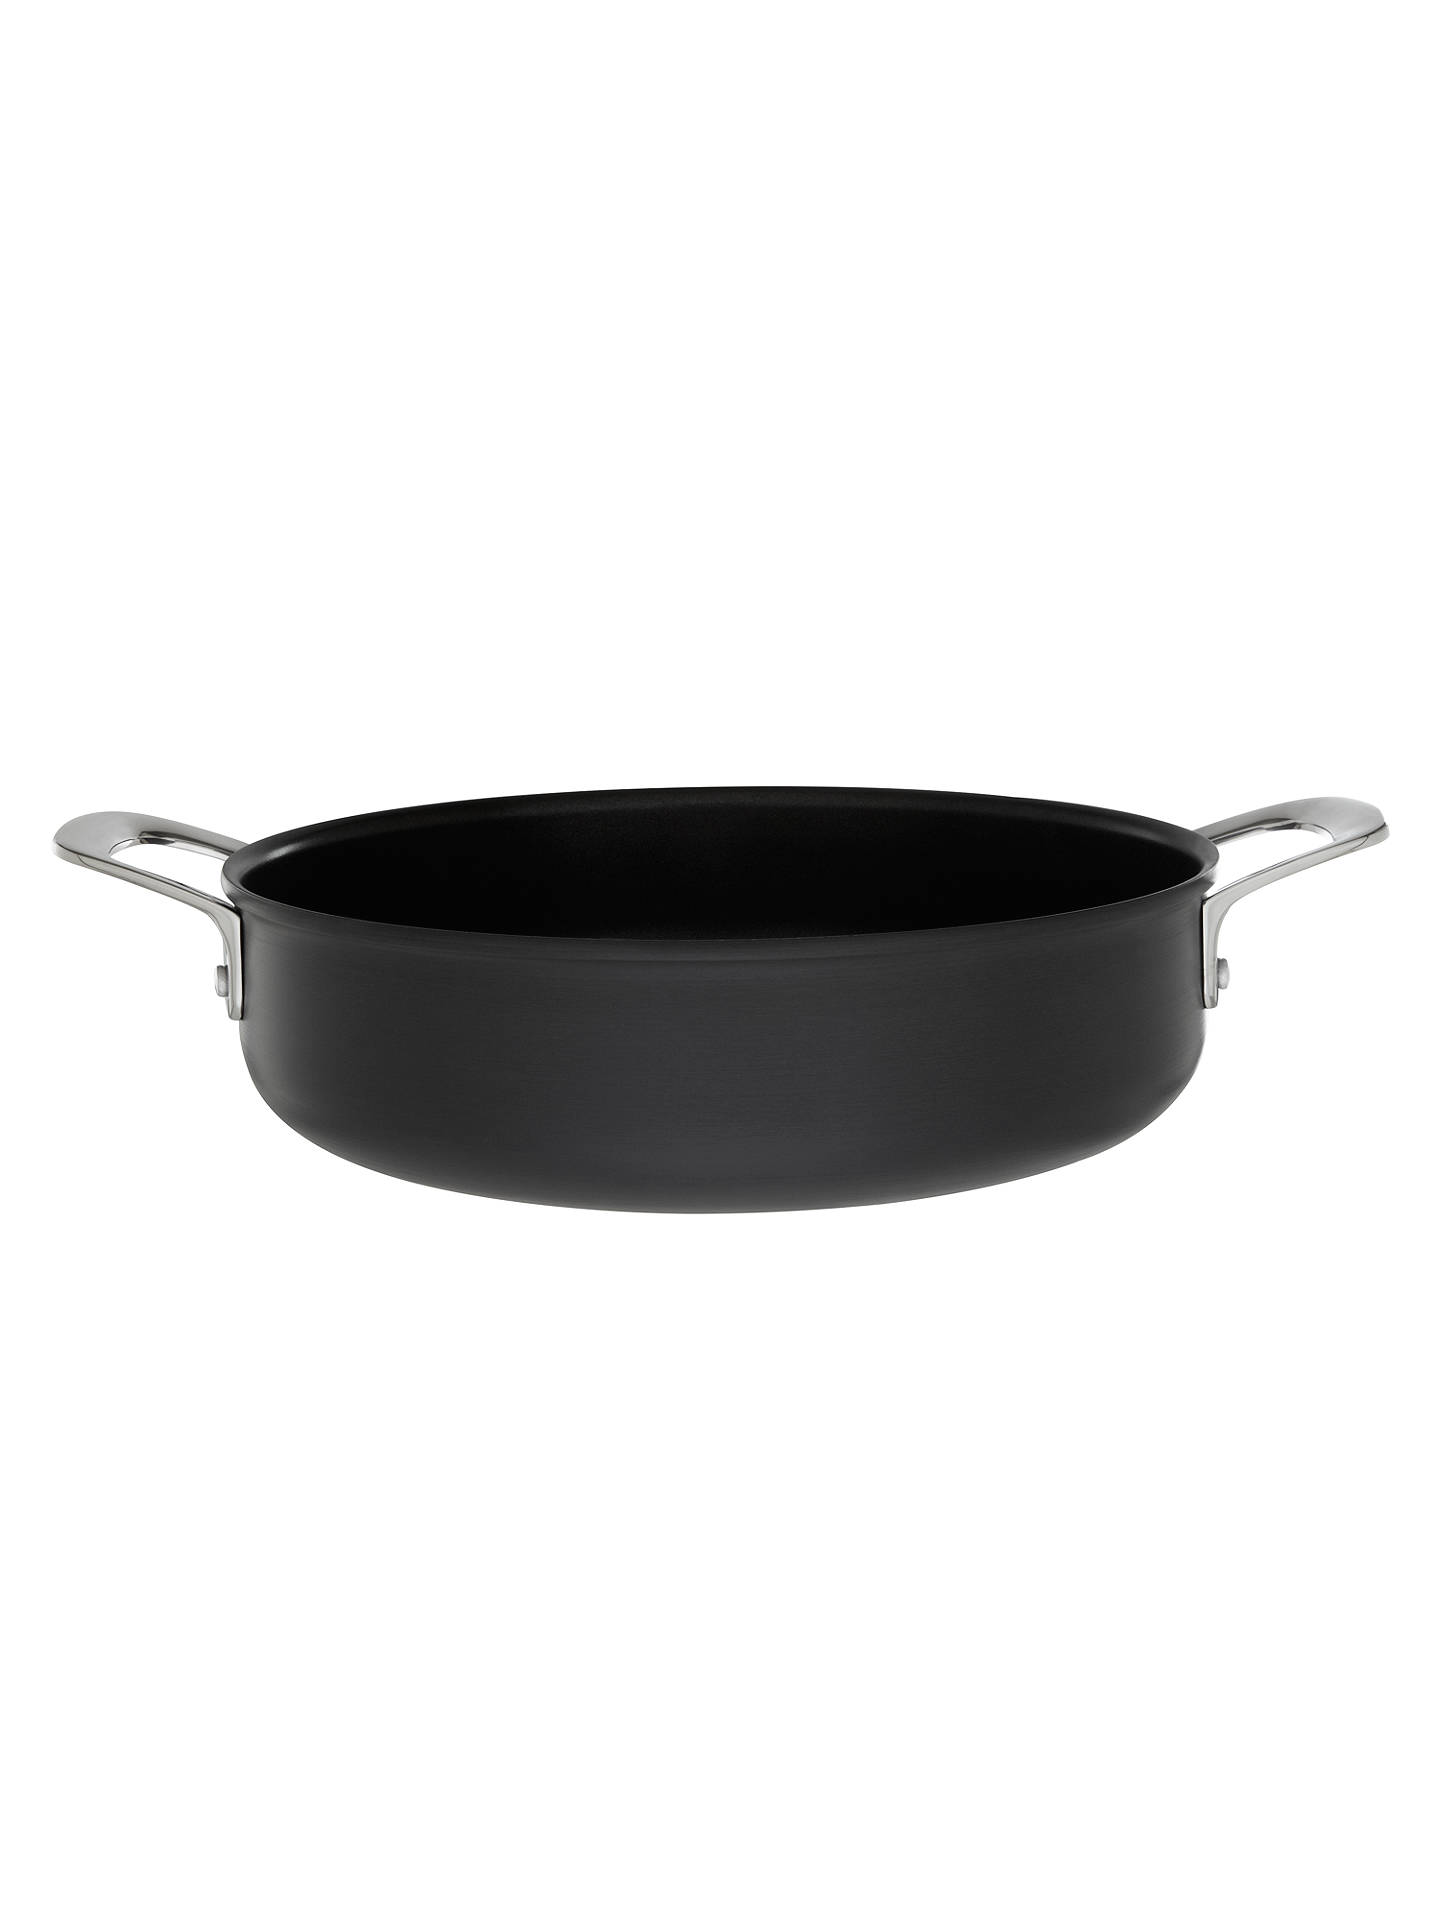 Jamie Oliver By Tefal Hard Anodised Shallow Pan With Lid